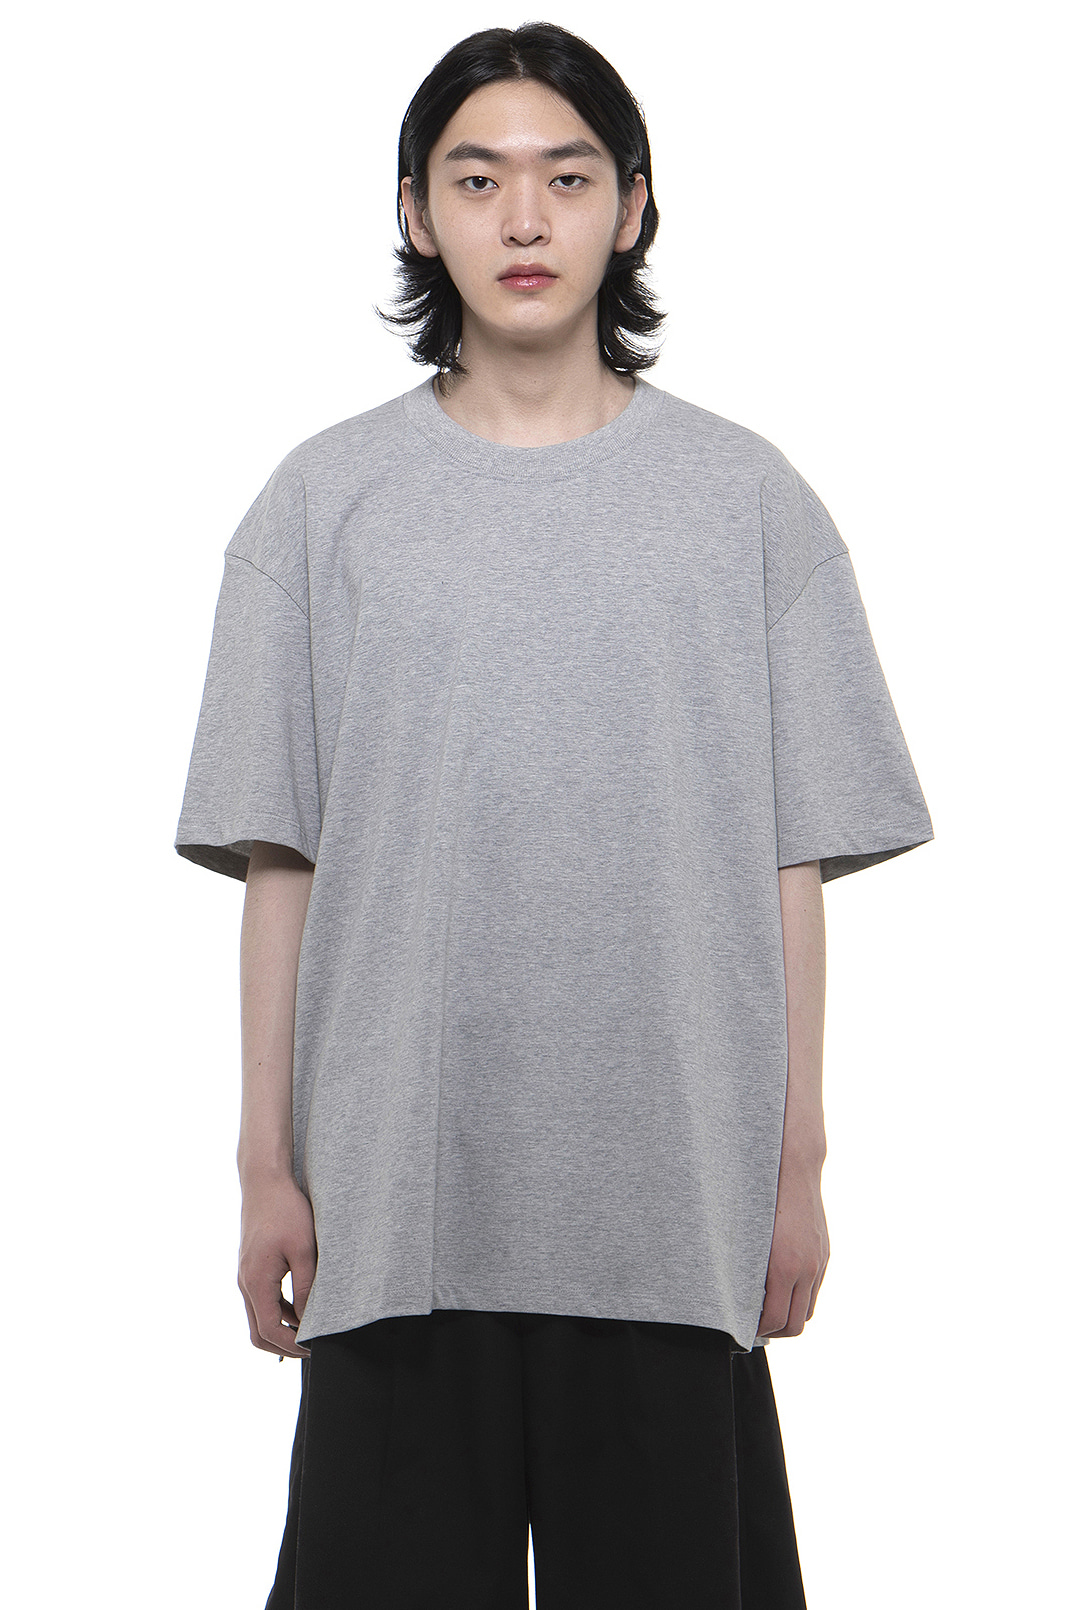 T001 / Cotton 100 Layered Grey T